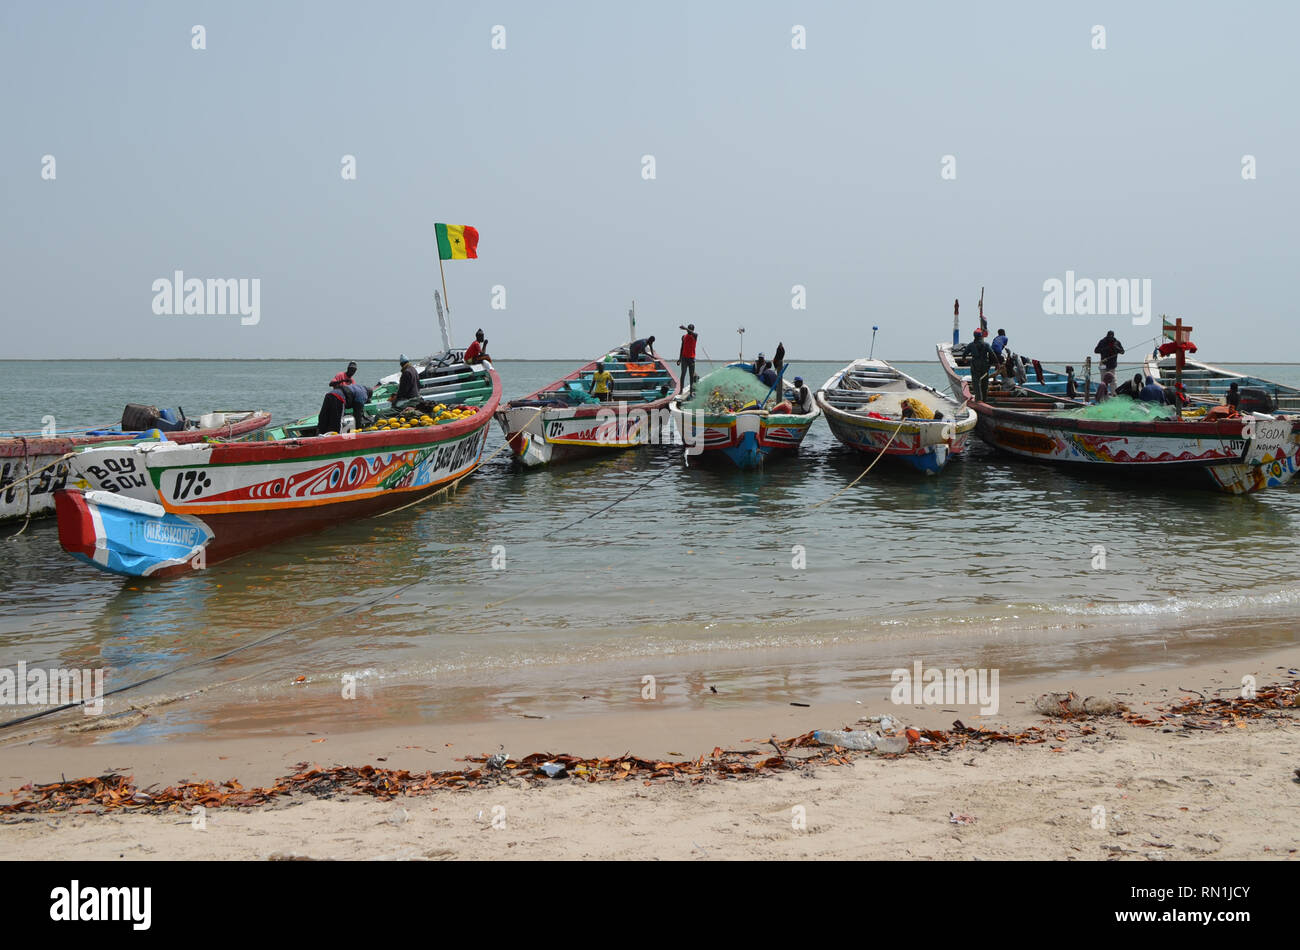 Pirogues used in the Sardinella fishery in Senegal, Western Africa Stock Photo